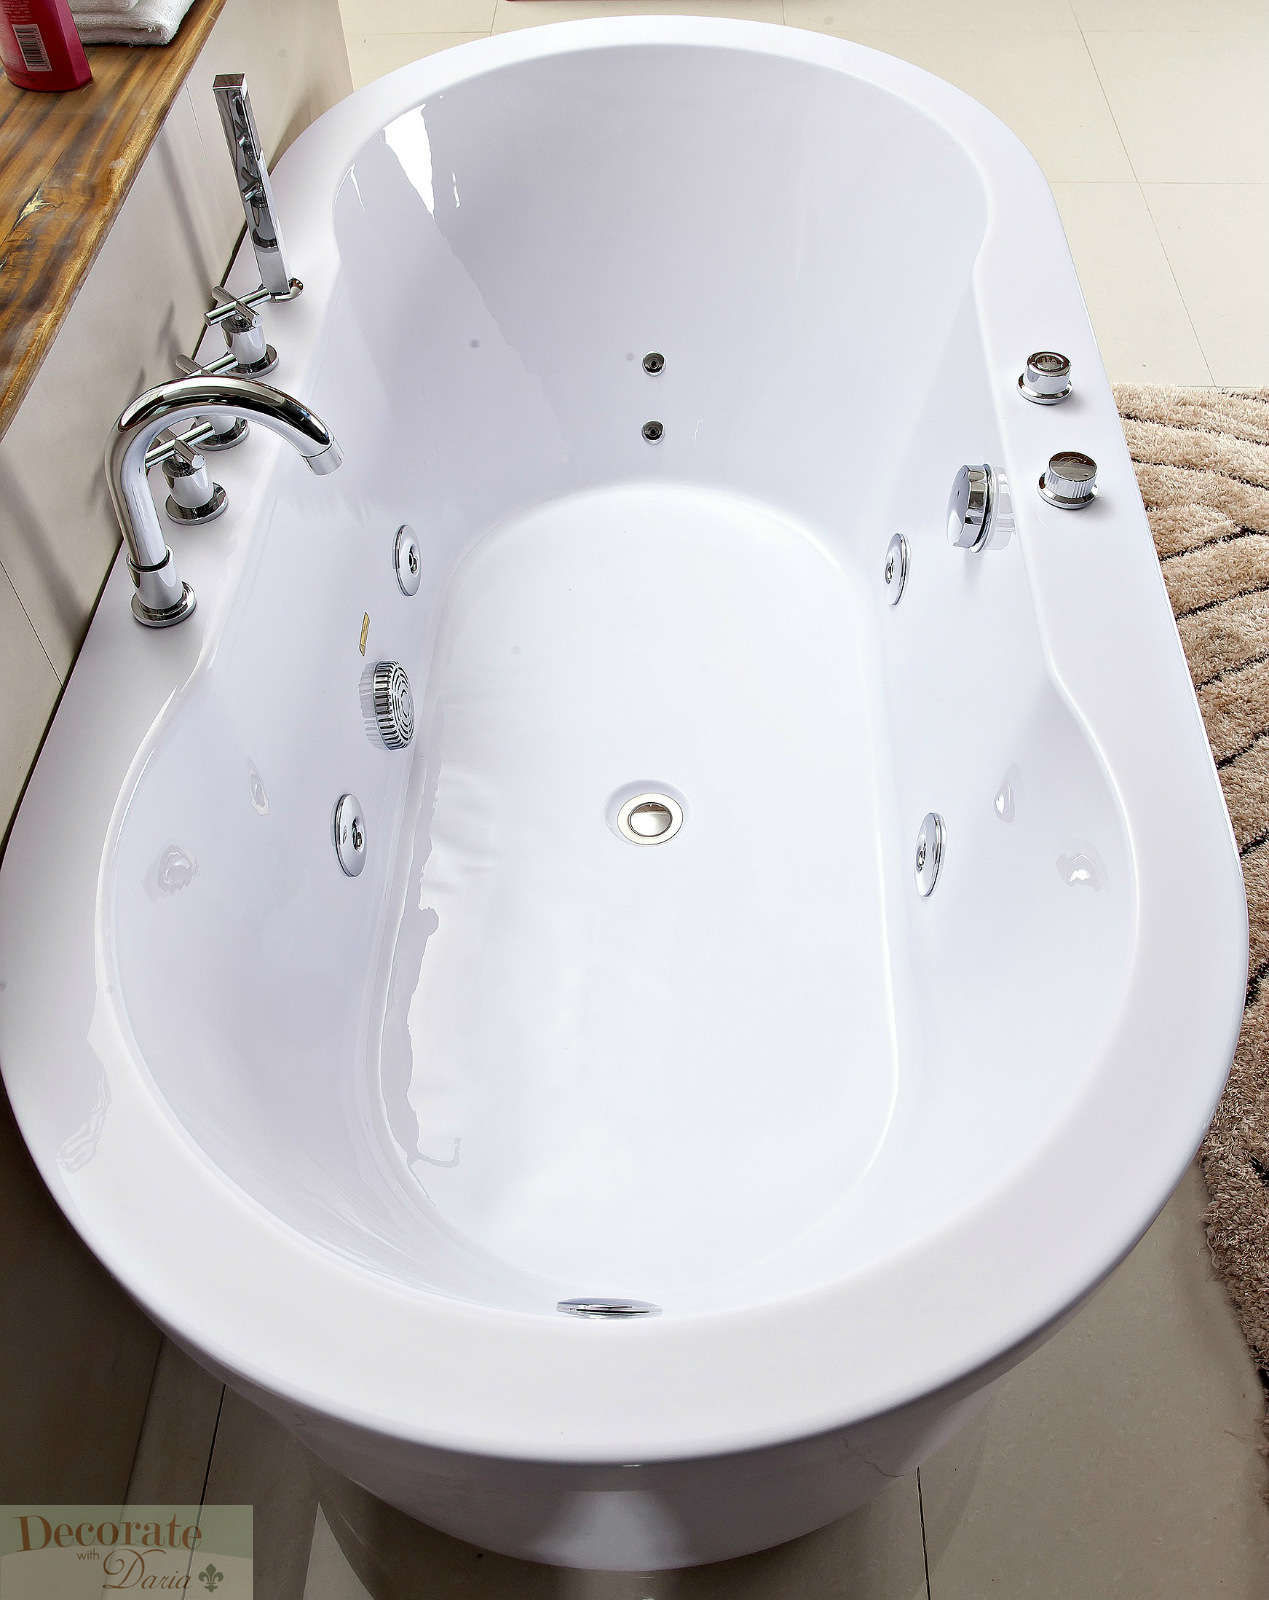 Image Result For Decorate Above Bathtub